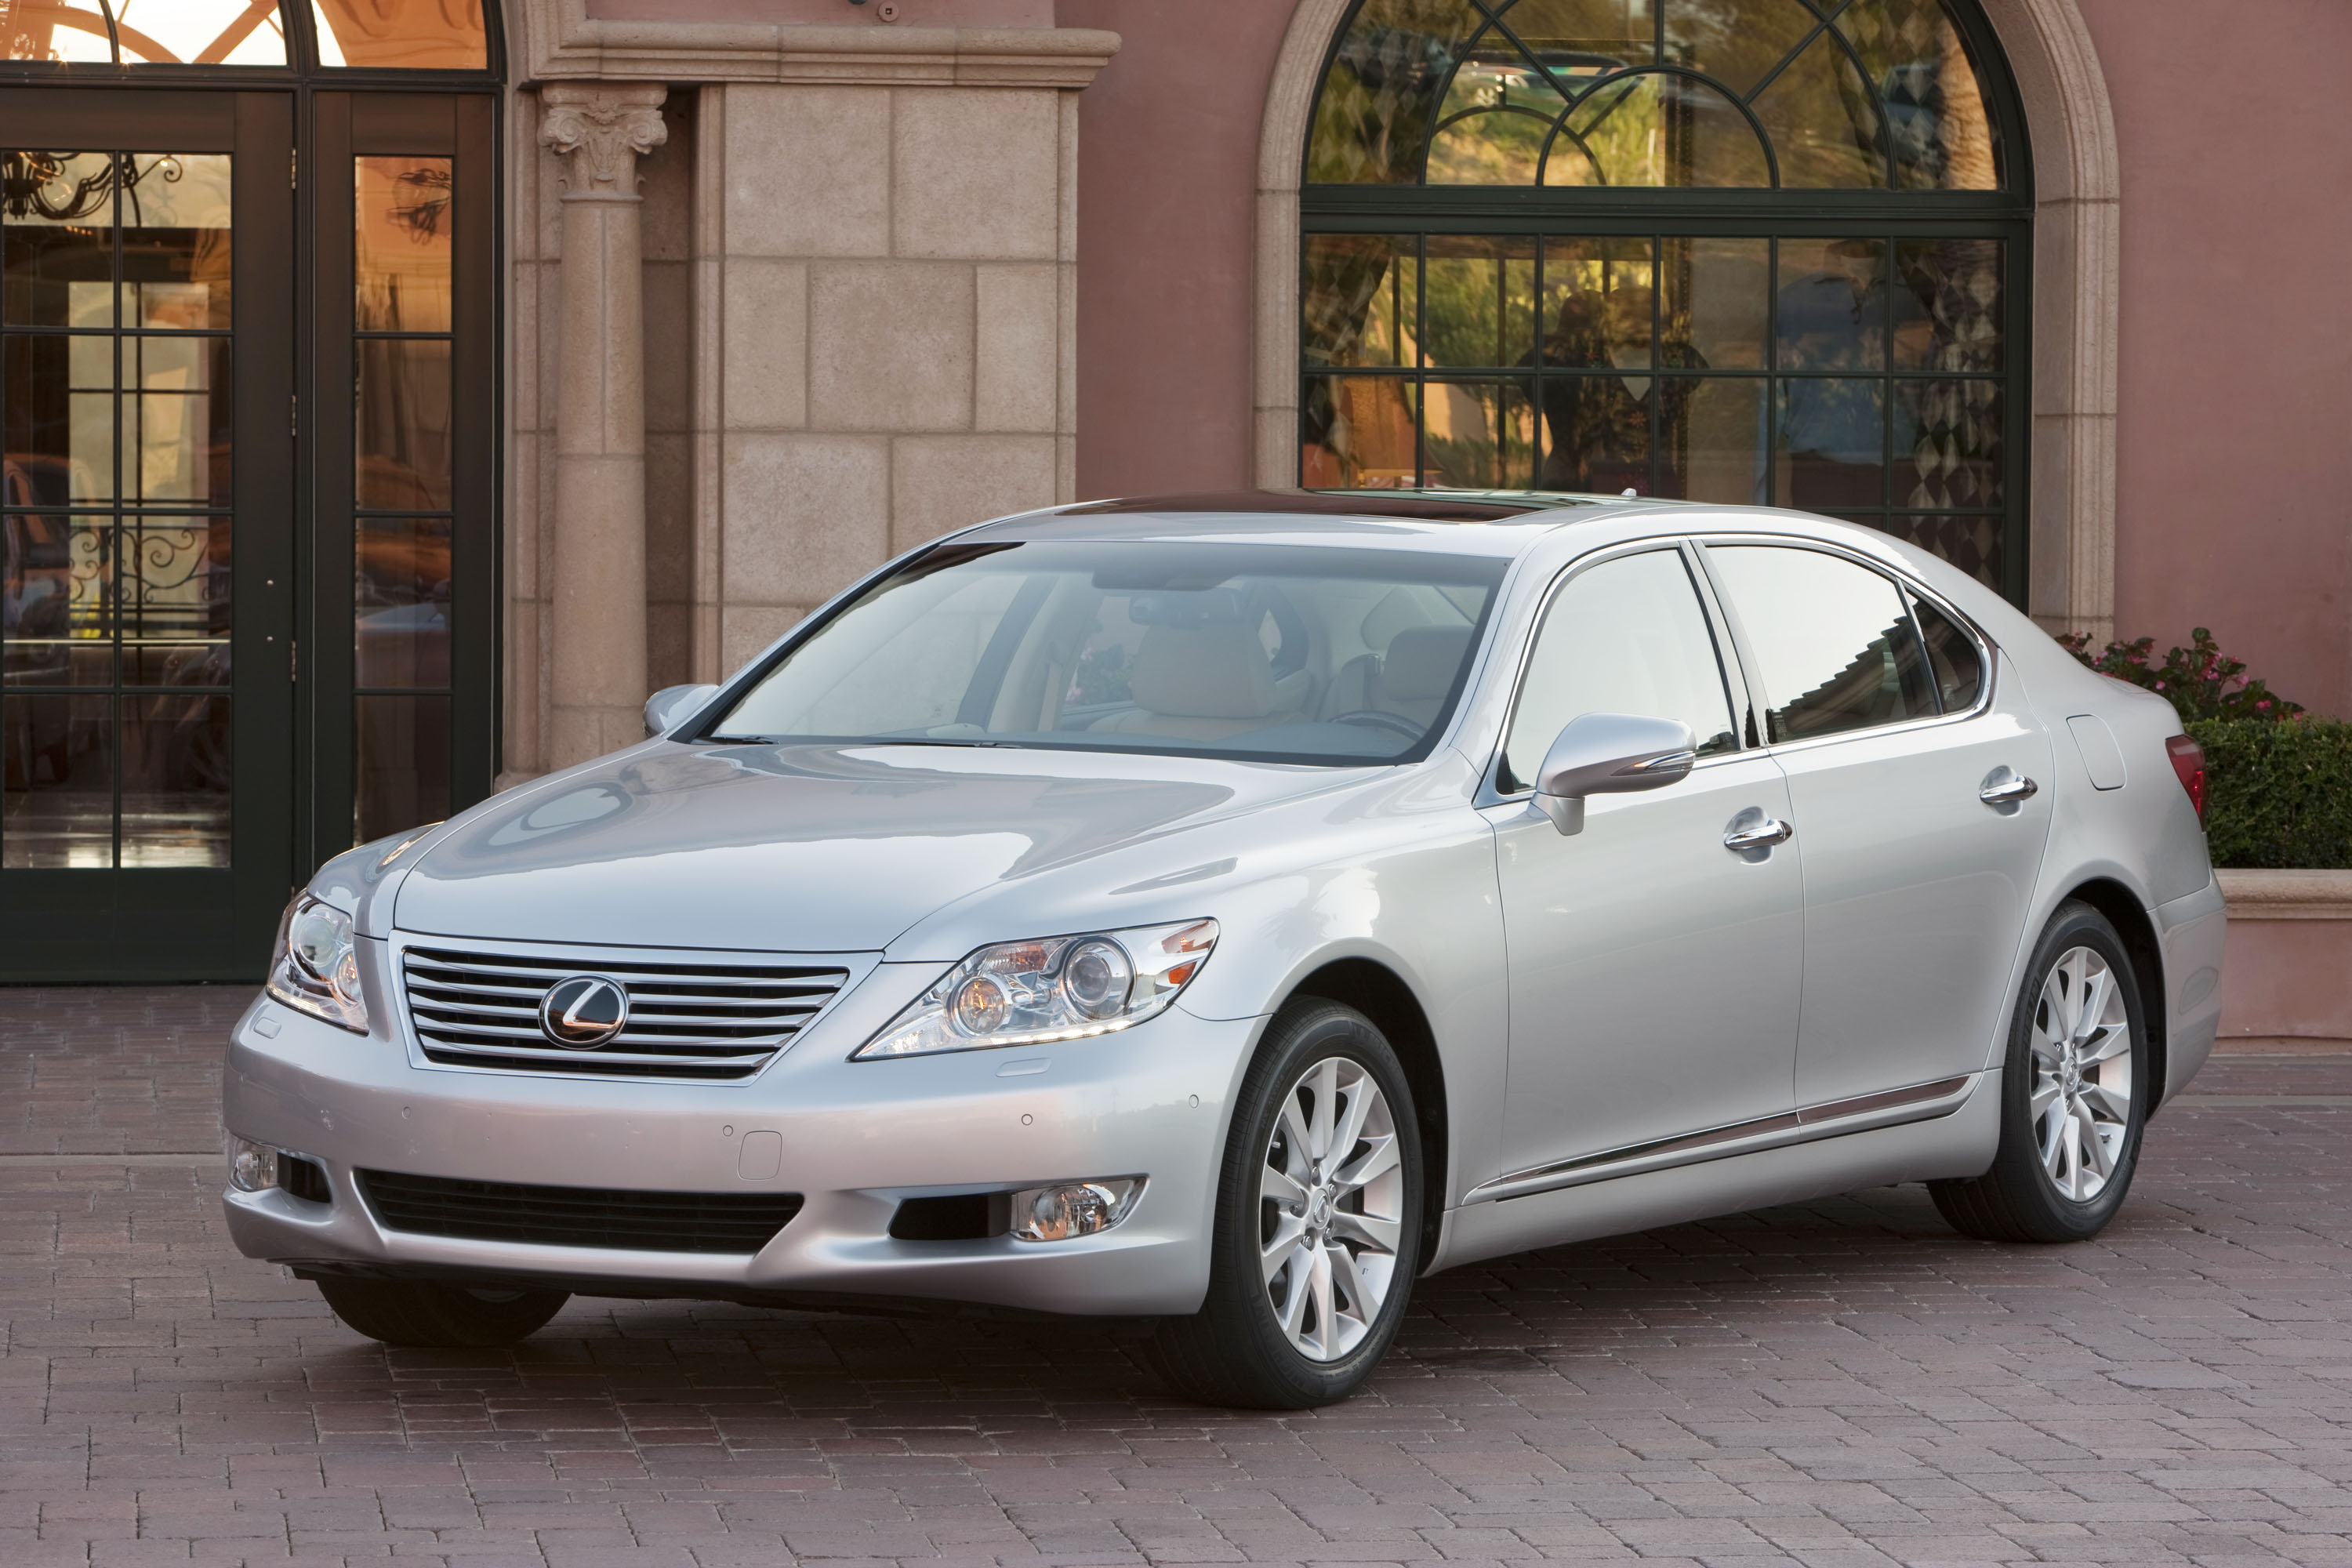 2012 lexus ls 460 review ratings specs prices and photos the car connection. Black Bedroom Furniture Sets. Home Design Ideas